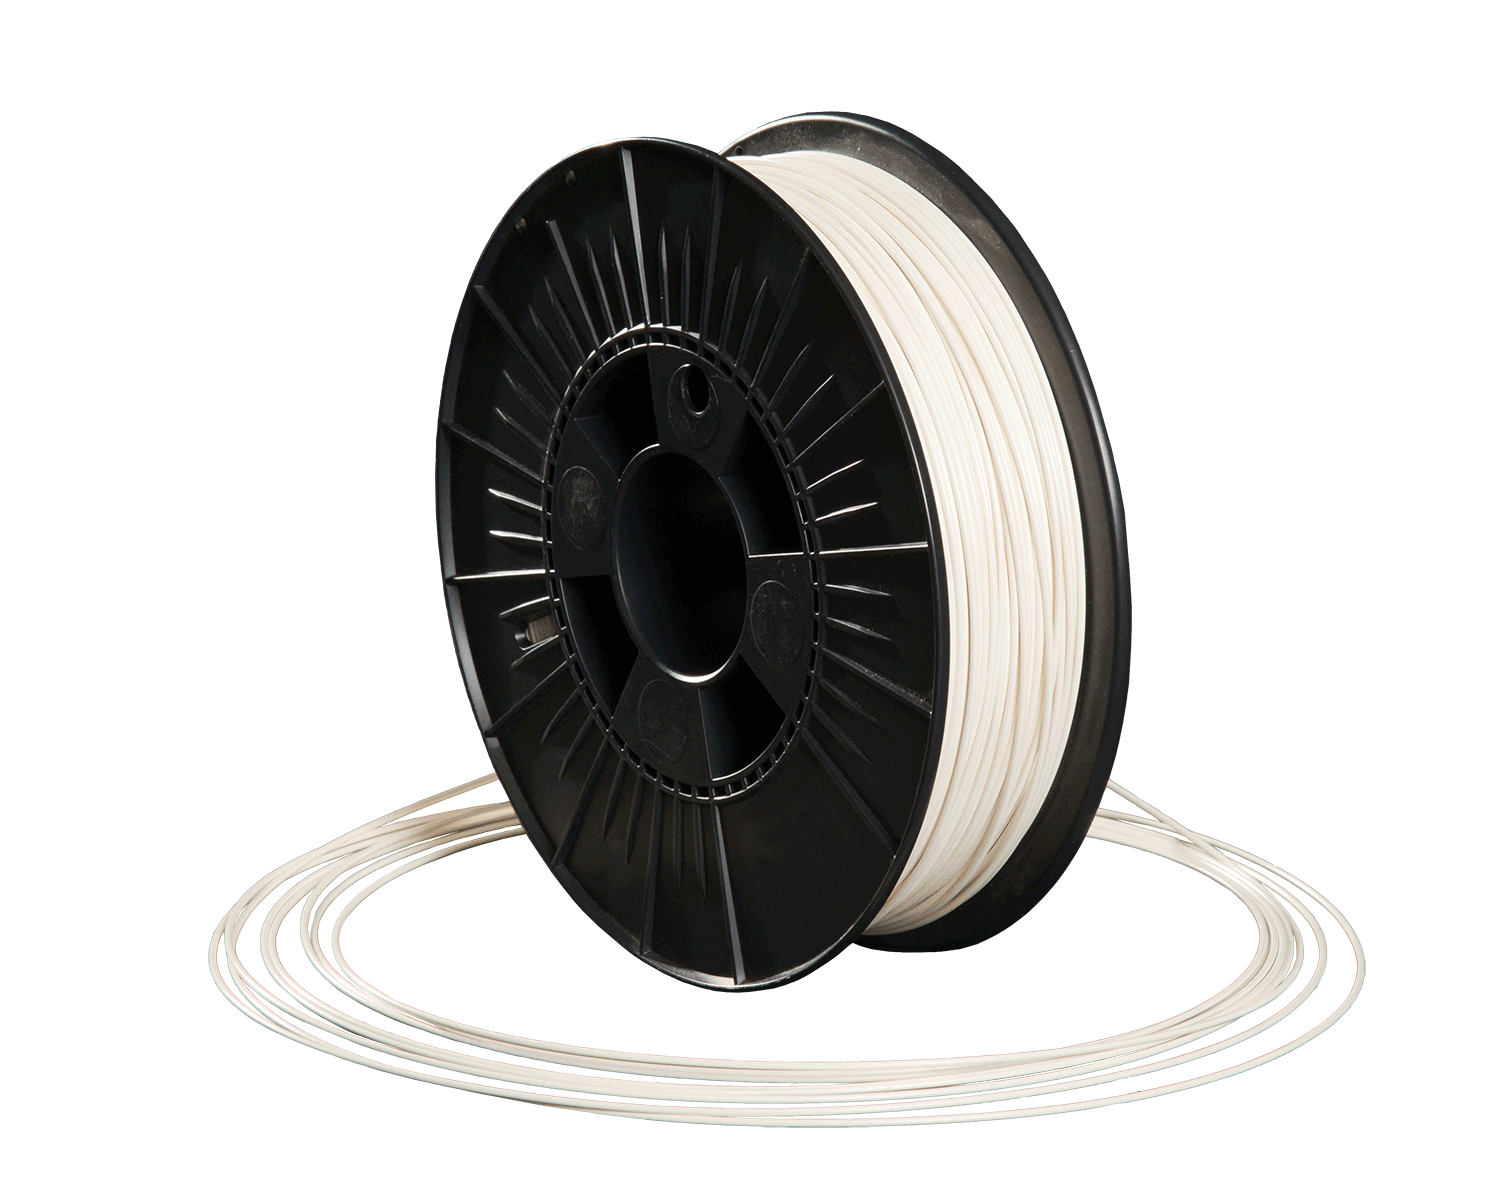 Preperm filaments for 3D printing